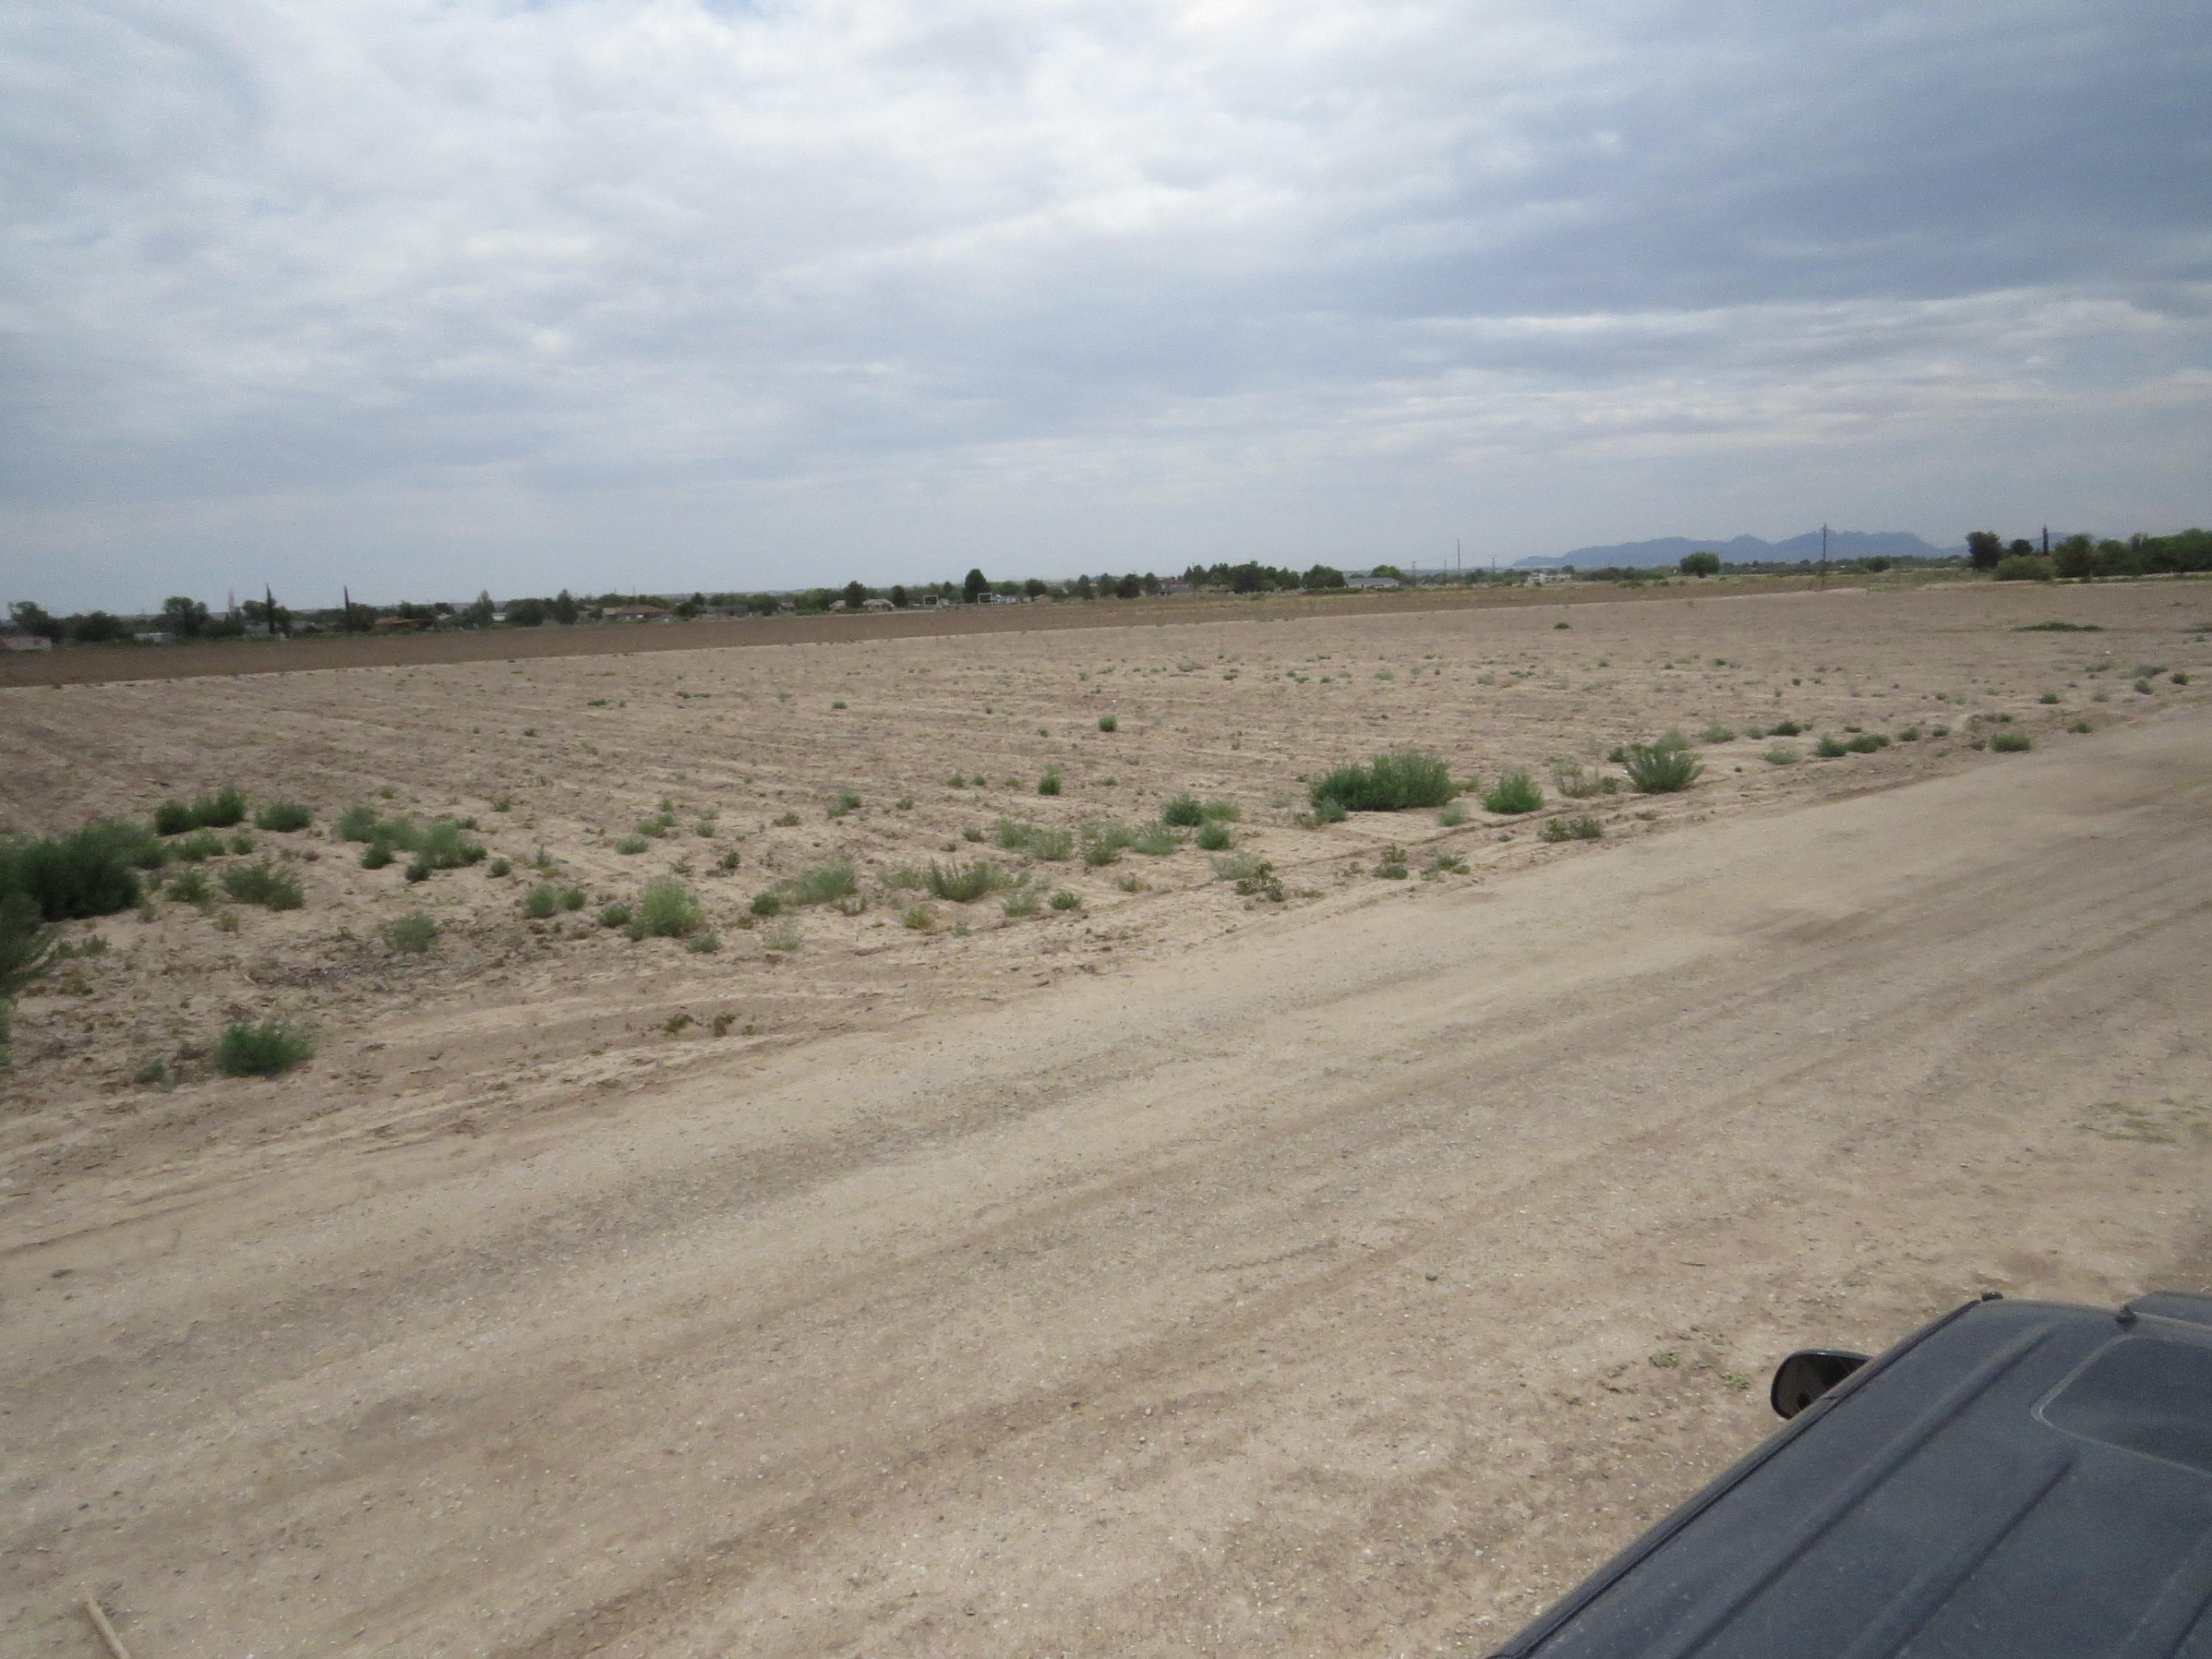 TBD TBD, San Elizario, Texas 79849, ,Land,For sale,TBD,813875